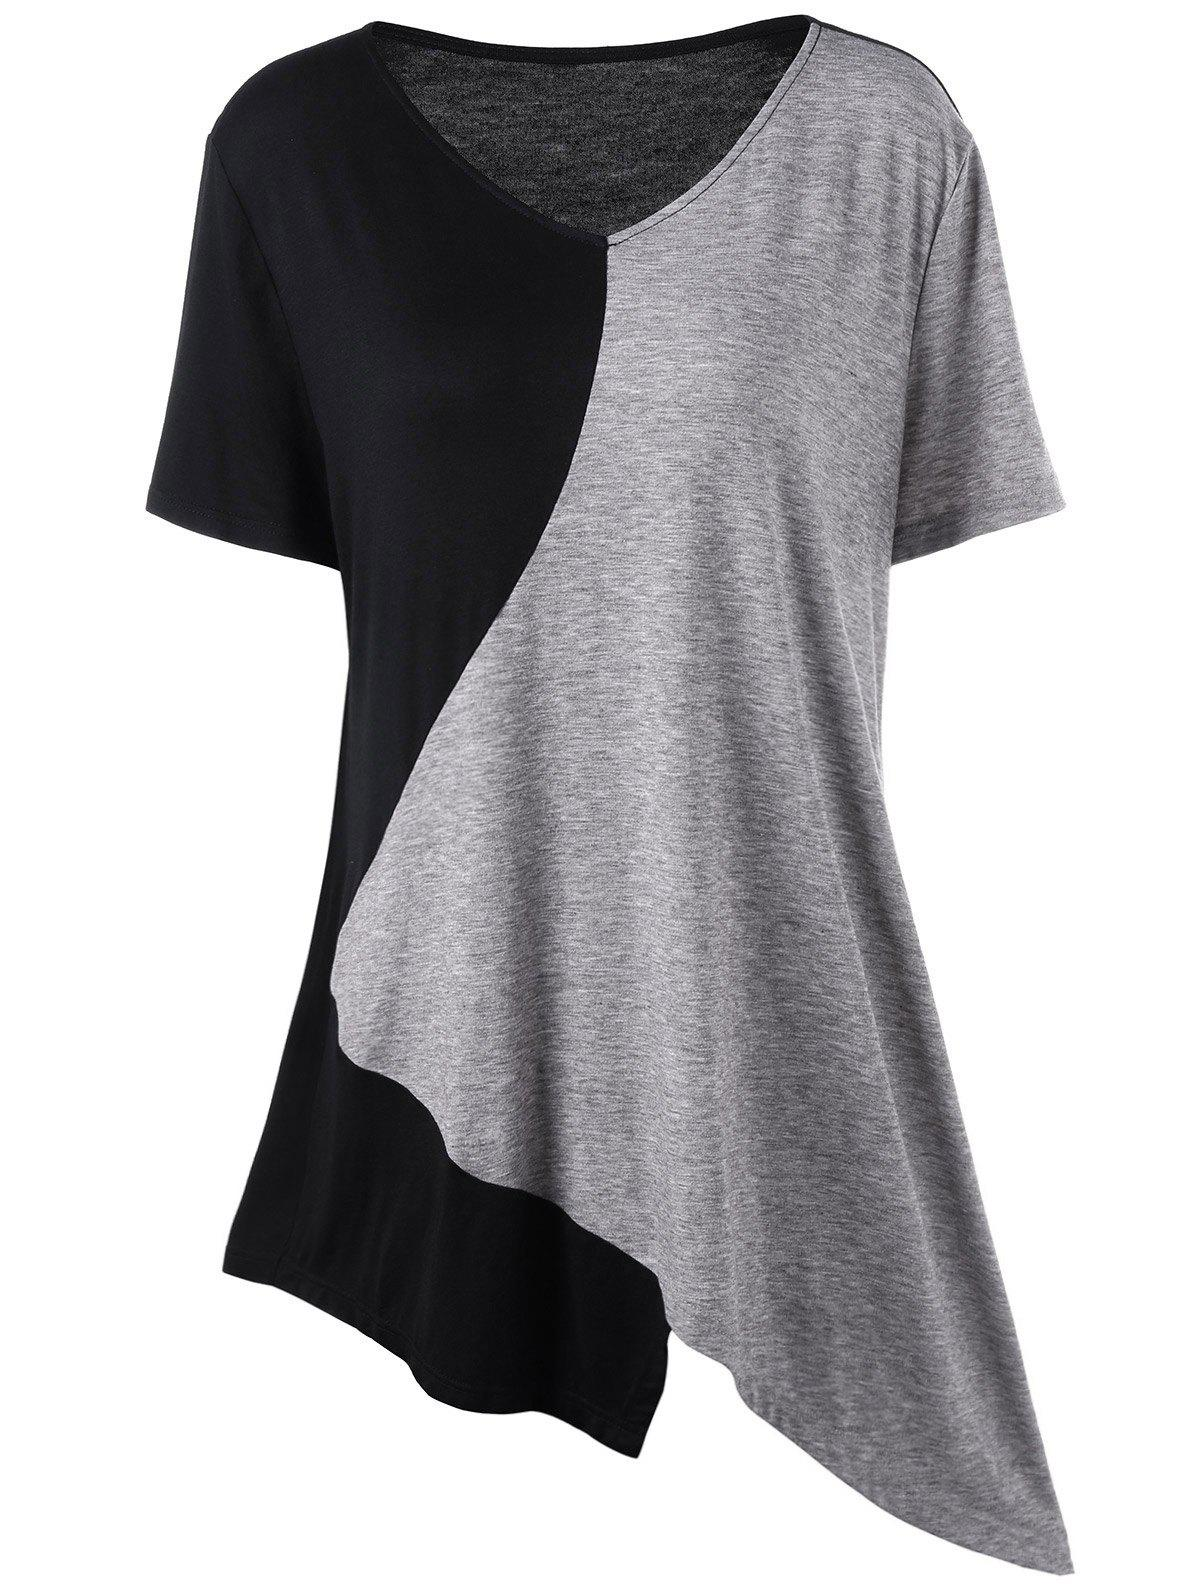 Asymmetrical Color Block Plus Size Long T-ShirtWOMEN<br><br>Size: 5XL; Color: BLACK AND GREY; Material: Cotton,Spandex; Shirt Length: Long; Sleeve Length: Short; Collar: V-Neck; Style: Casual; Season: Summer; Pattern Type: Others; Weight: 0.2000kg; Package Contents: 1 x T-Shirt;